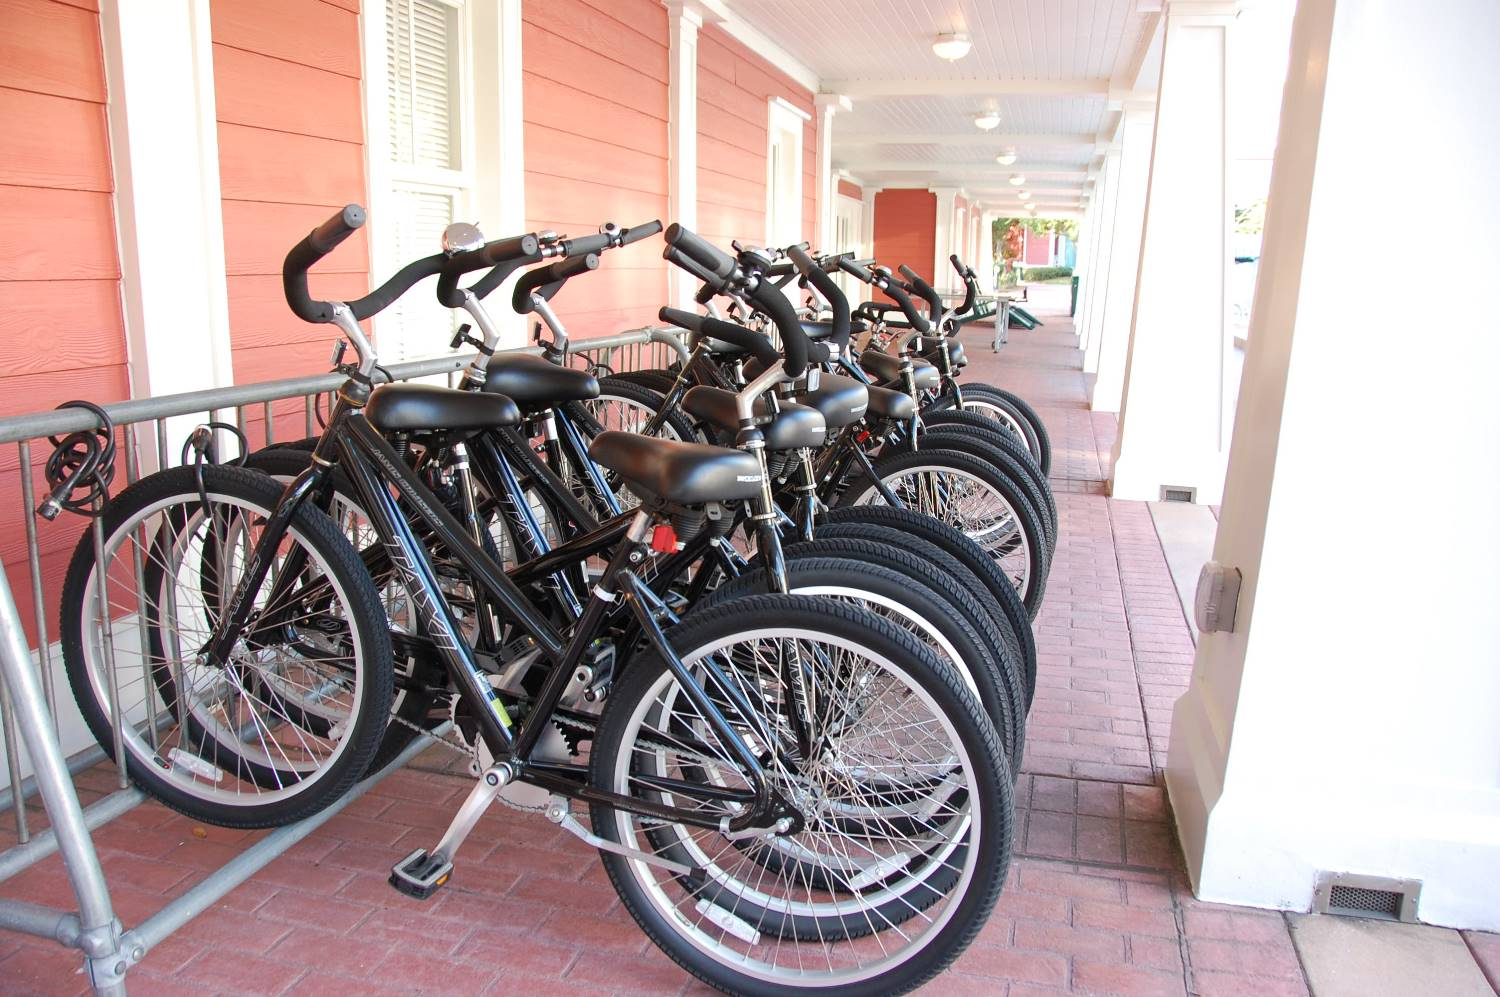 Disney's-Boardwalk-Inn-Bike-Rentals.JPG